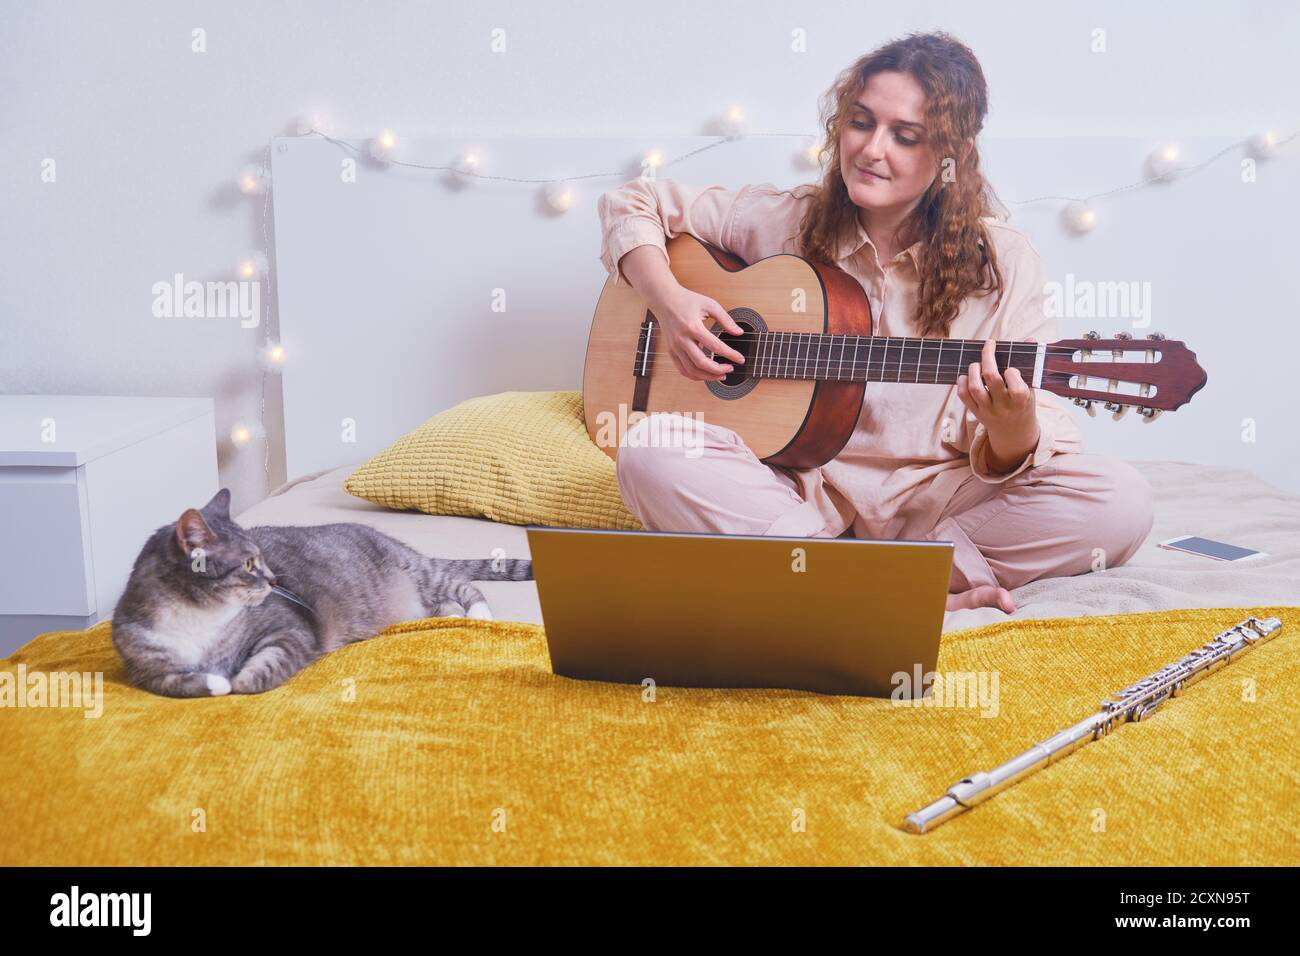 Cat Of New Musical High Resolution Stock Photography and Images ...